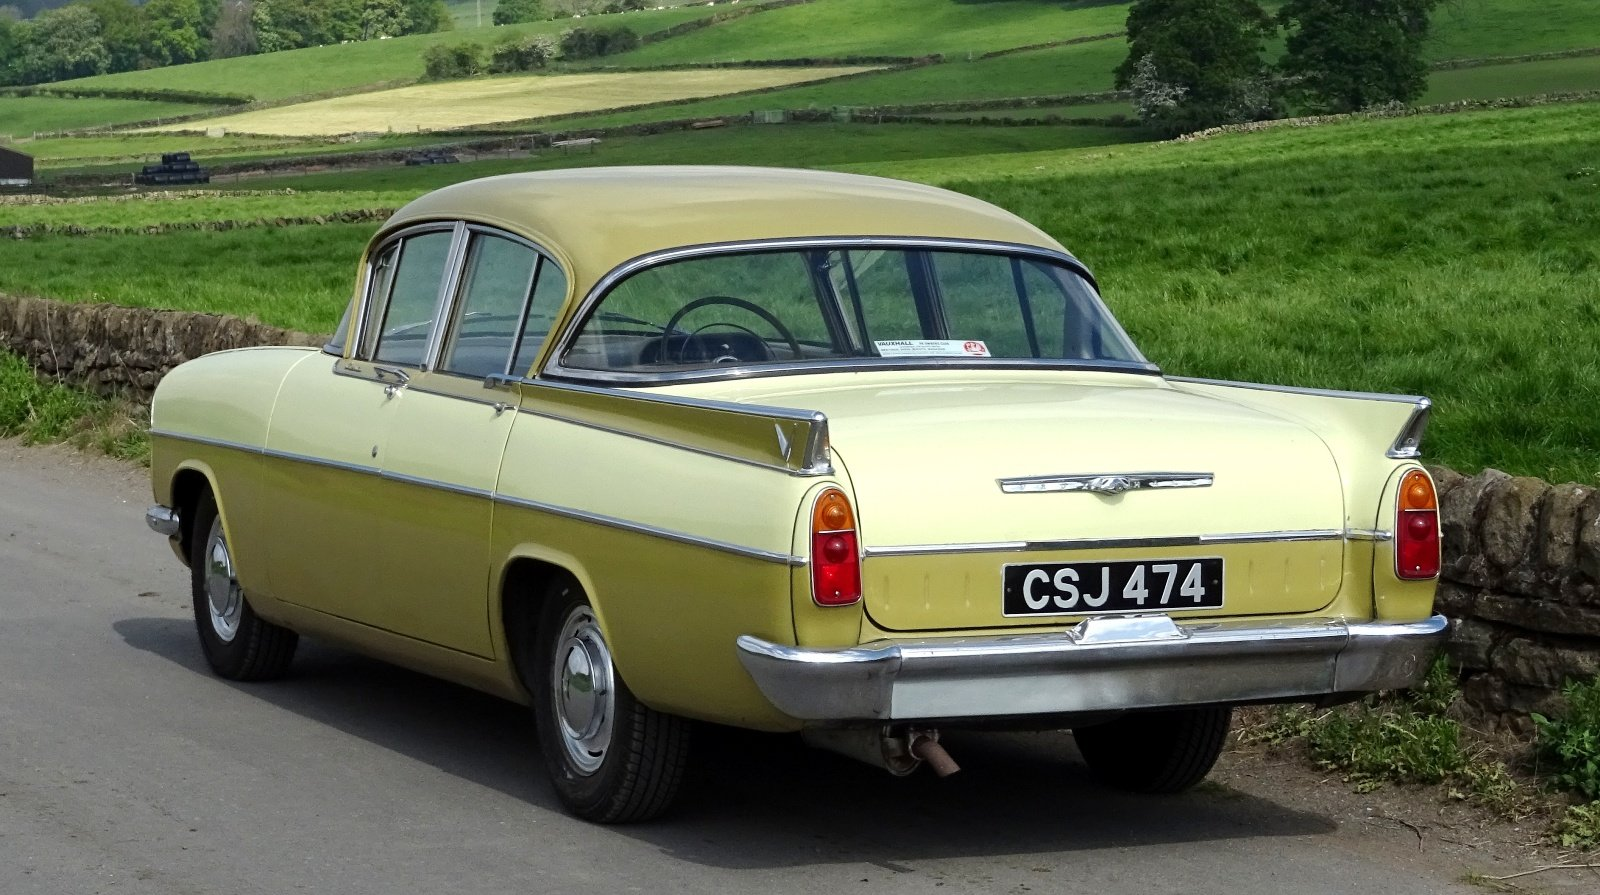 1961 VAUXHALL CRESTA STYLISH CLASSIC RARE COLOUR SCHEME AND SEATS For Sale (picture 5 of 6)